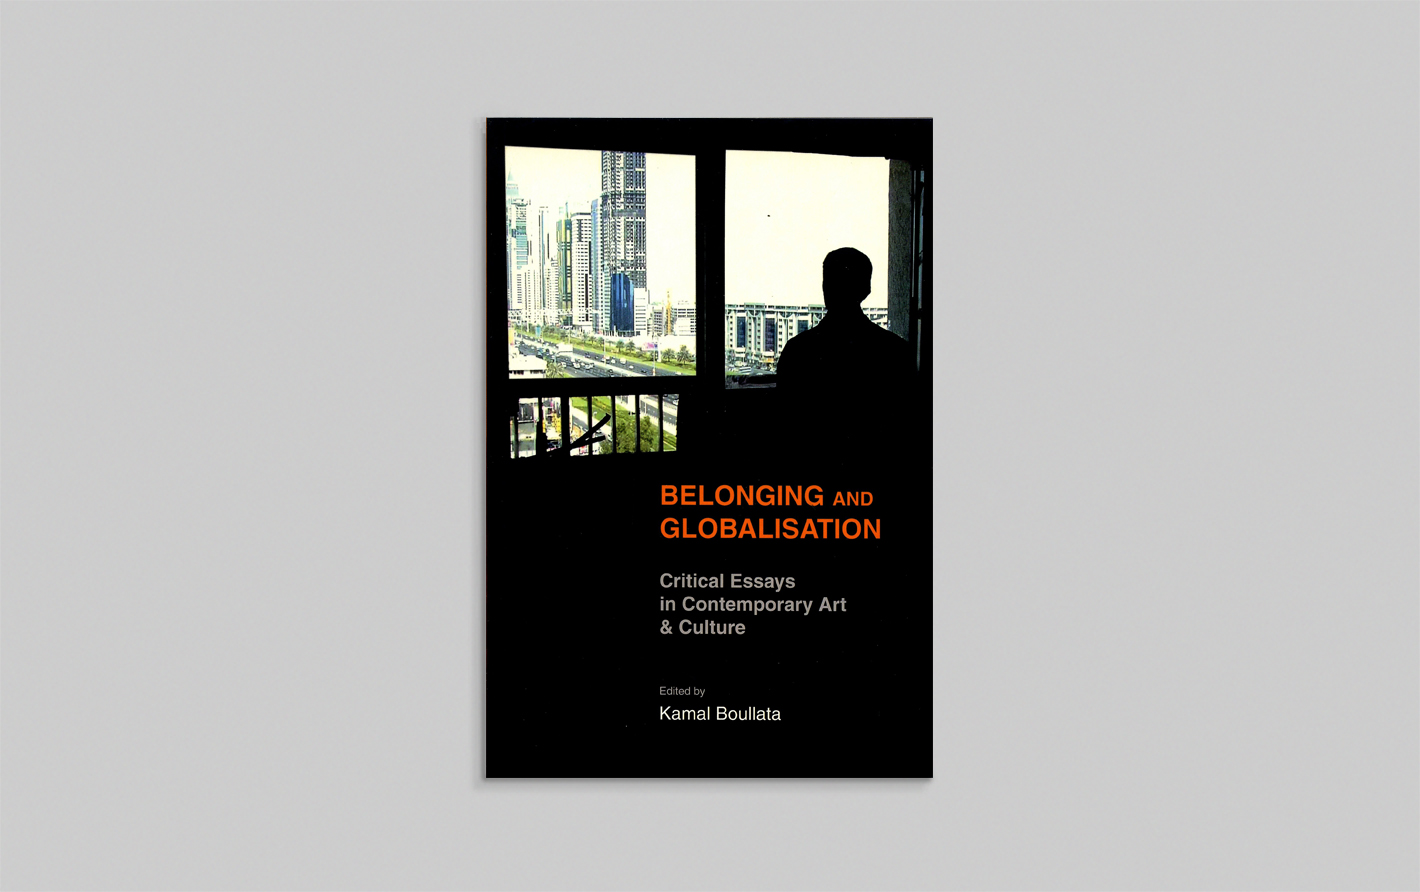 publications sharjah art foundation publication details belonging and globalisation critical essays in contemporary art